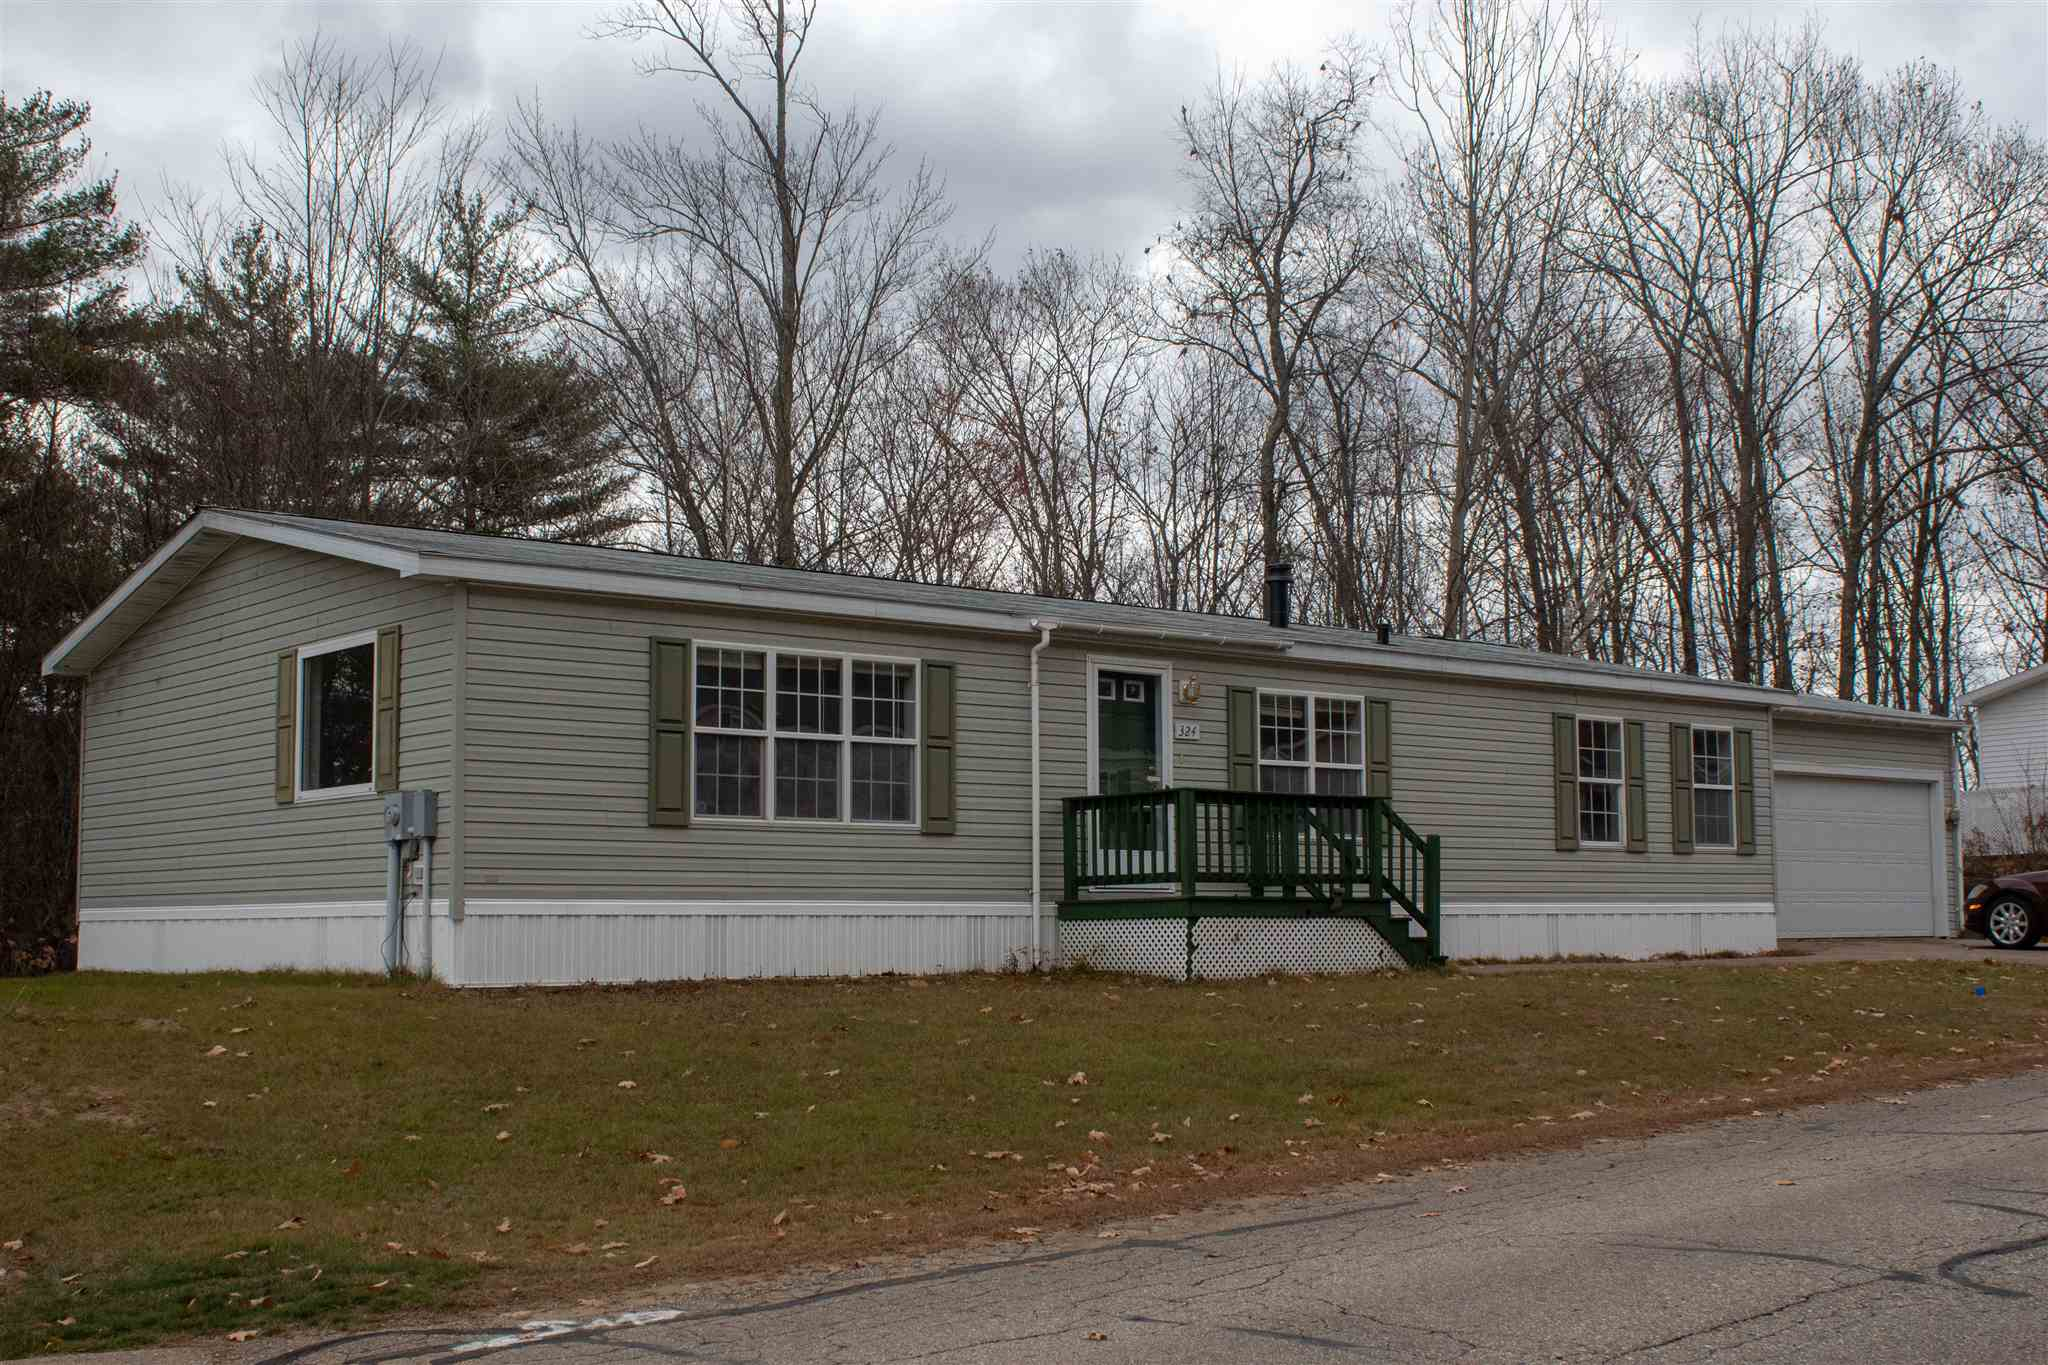 Photo of 324 Darby Drive Laconia NH 03246